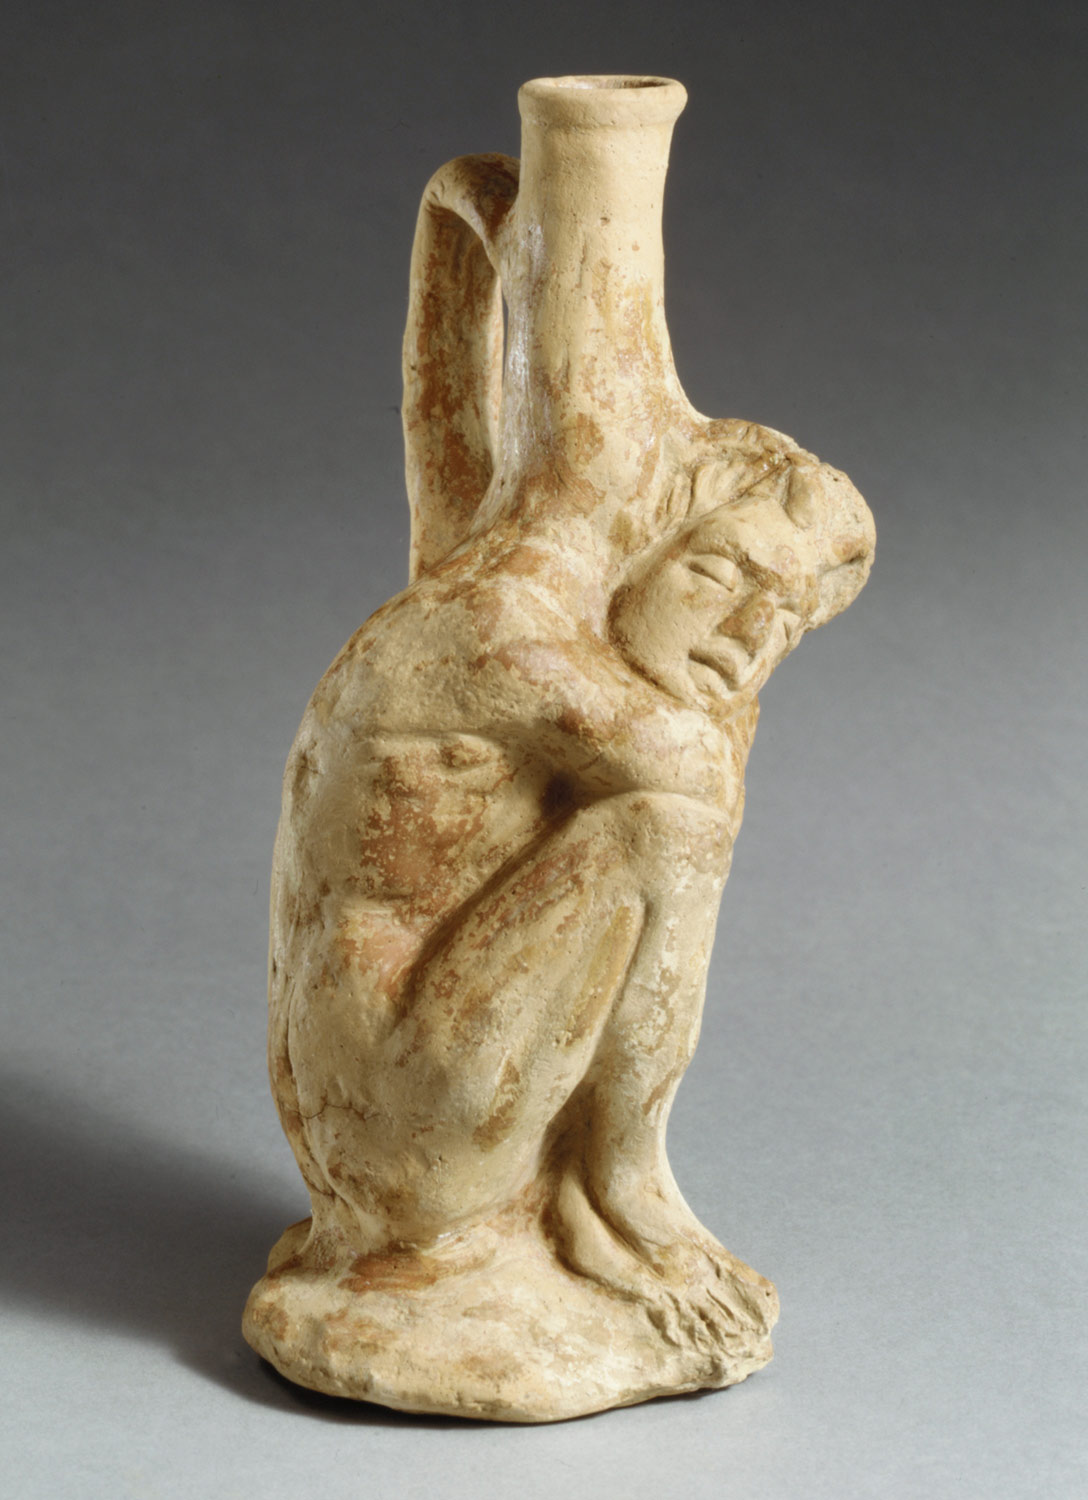 Terracotta vase in the form of a sleeping African (known as Ethiopian) boy